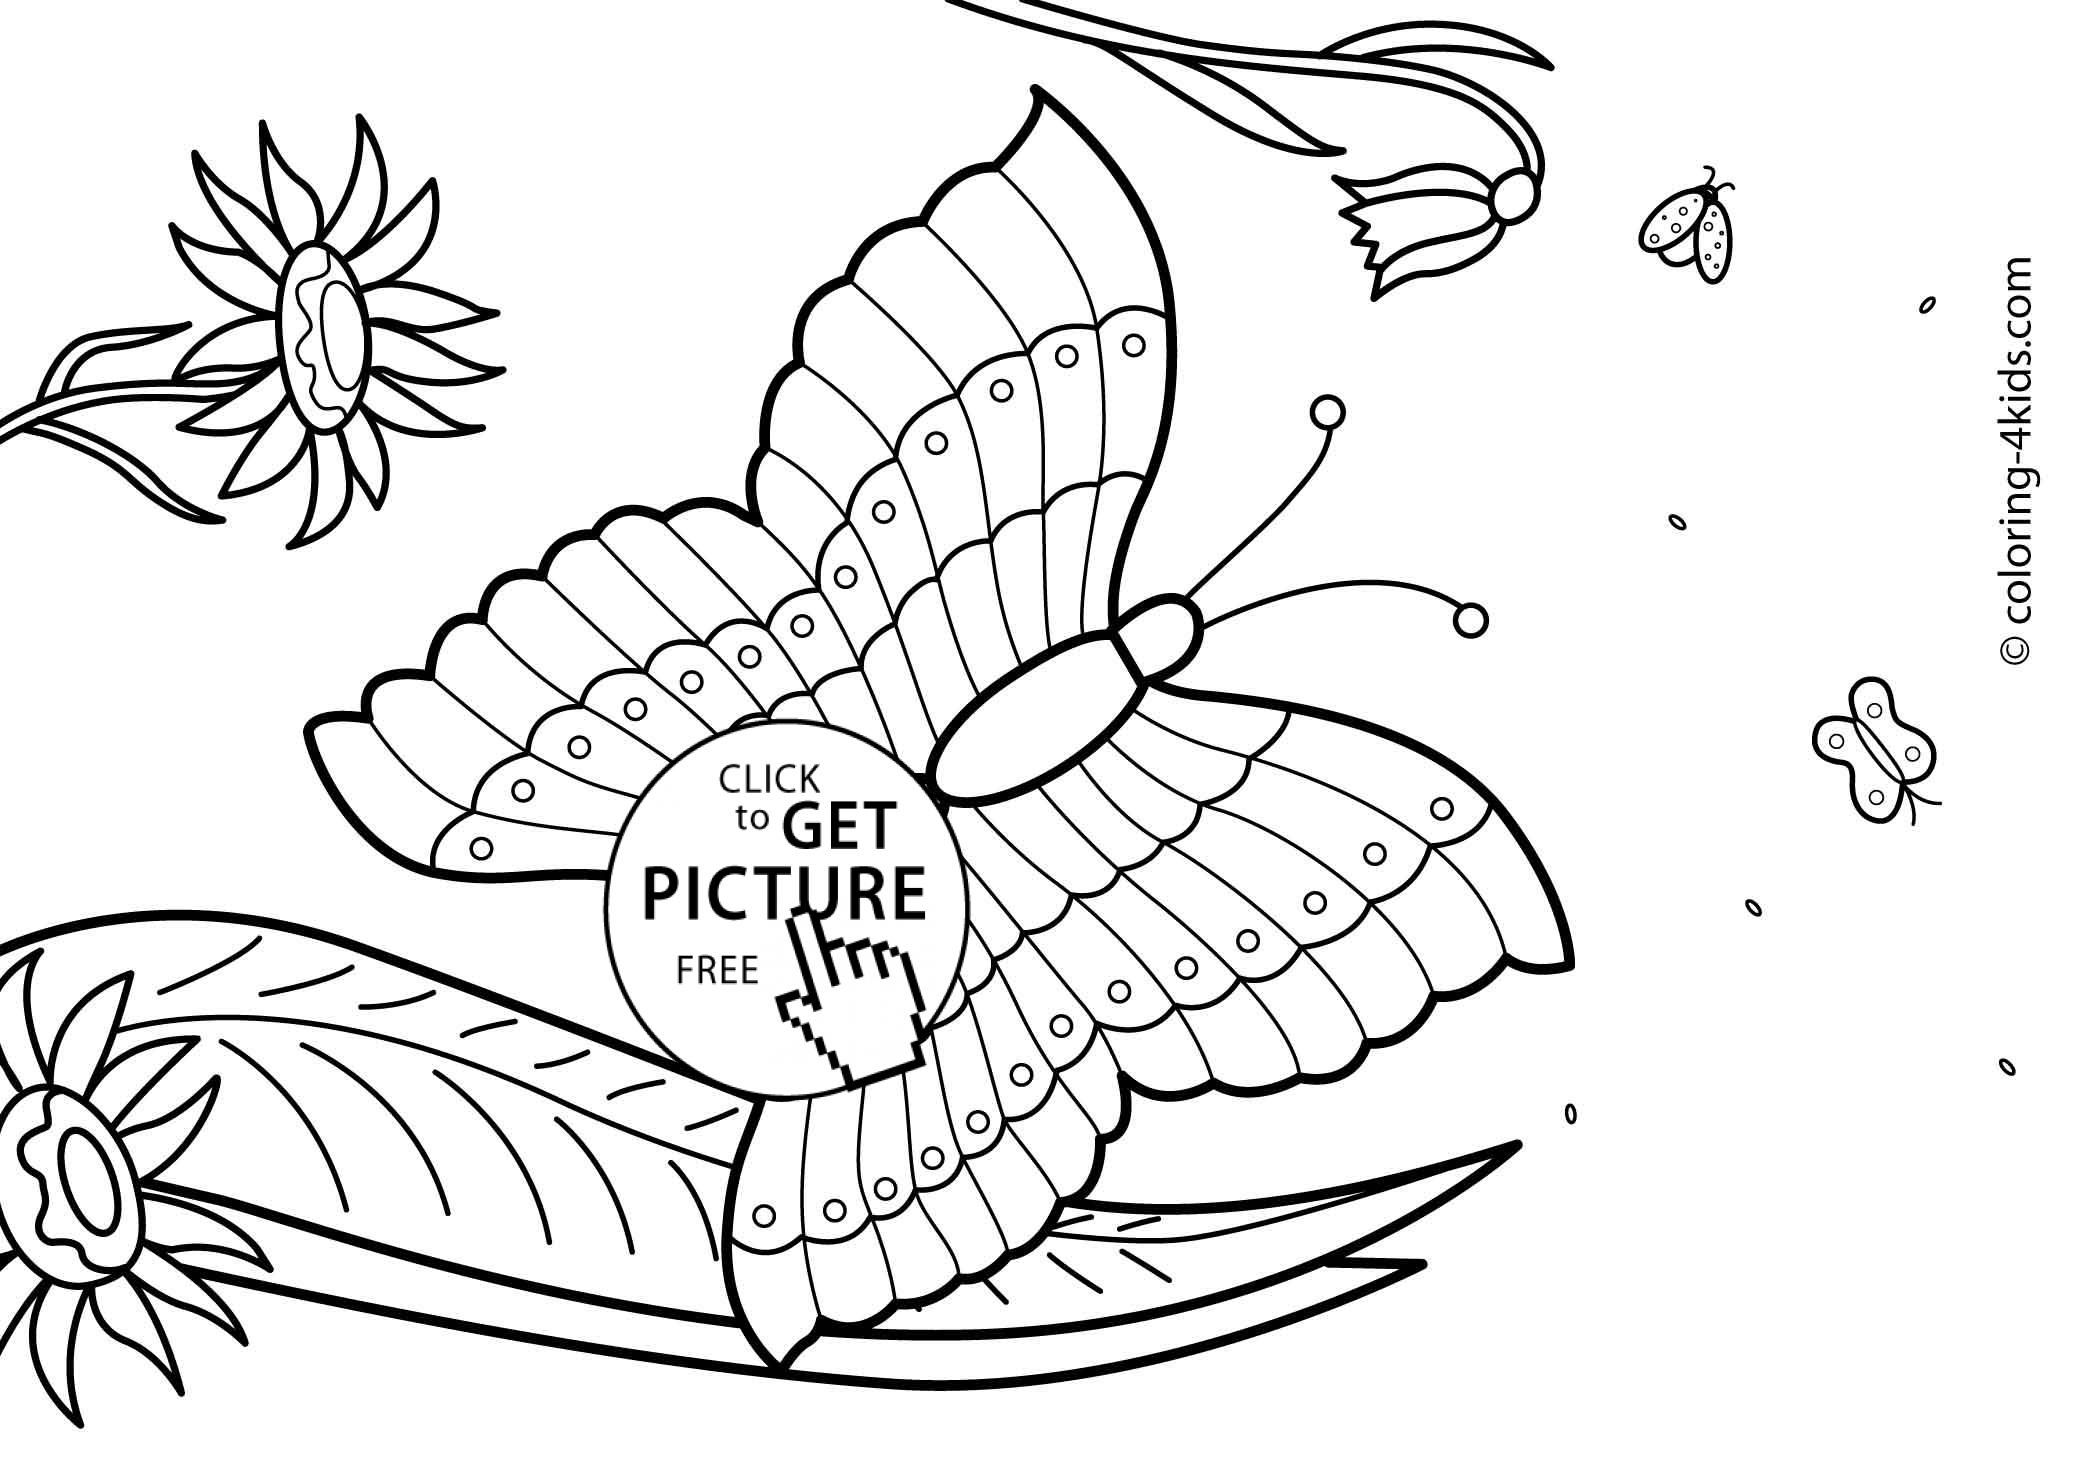 Summer Coloring Pages For Kids To Print Out